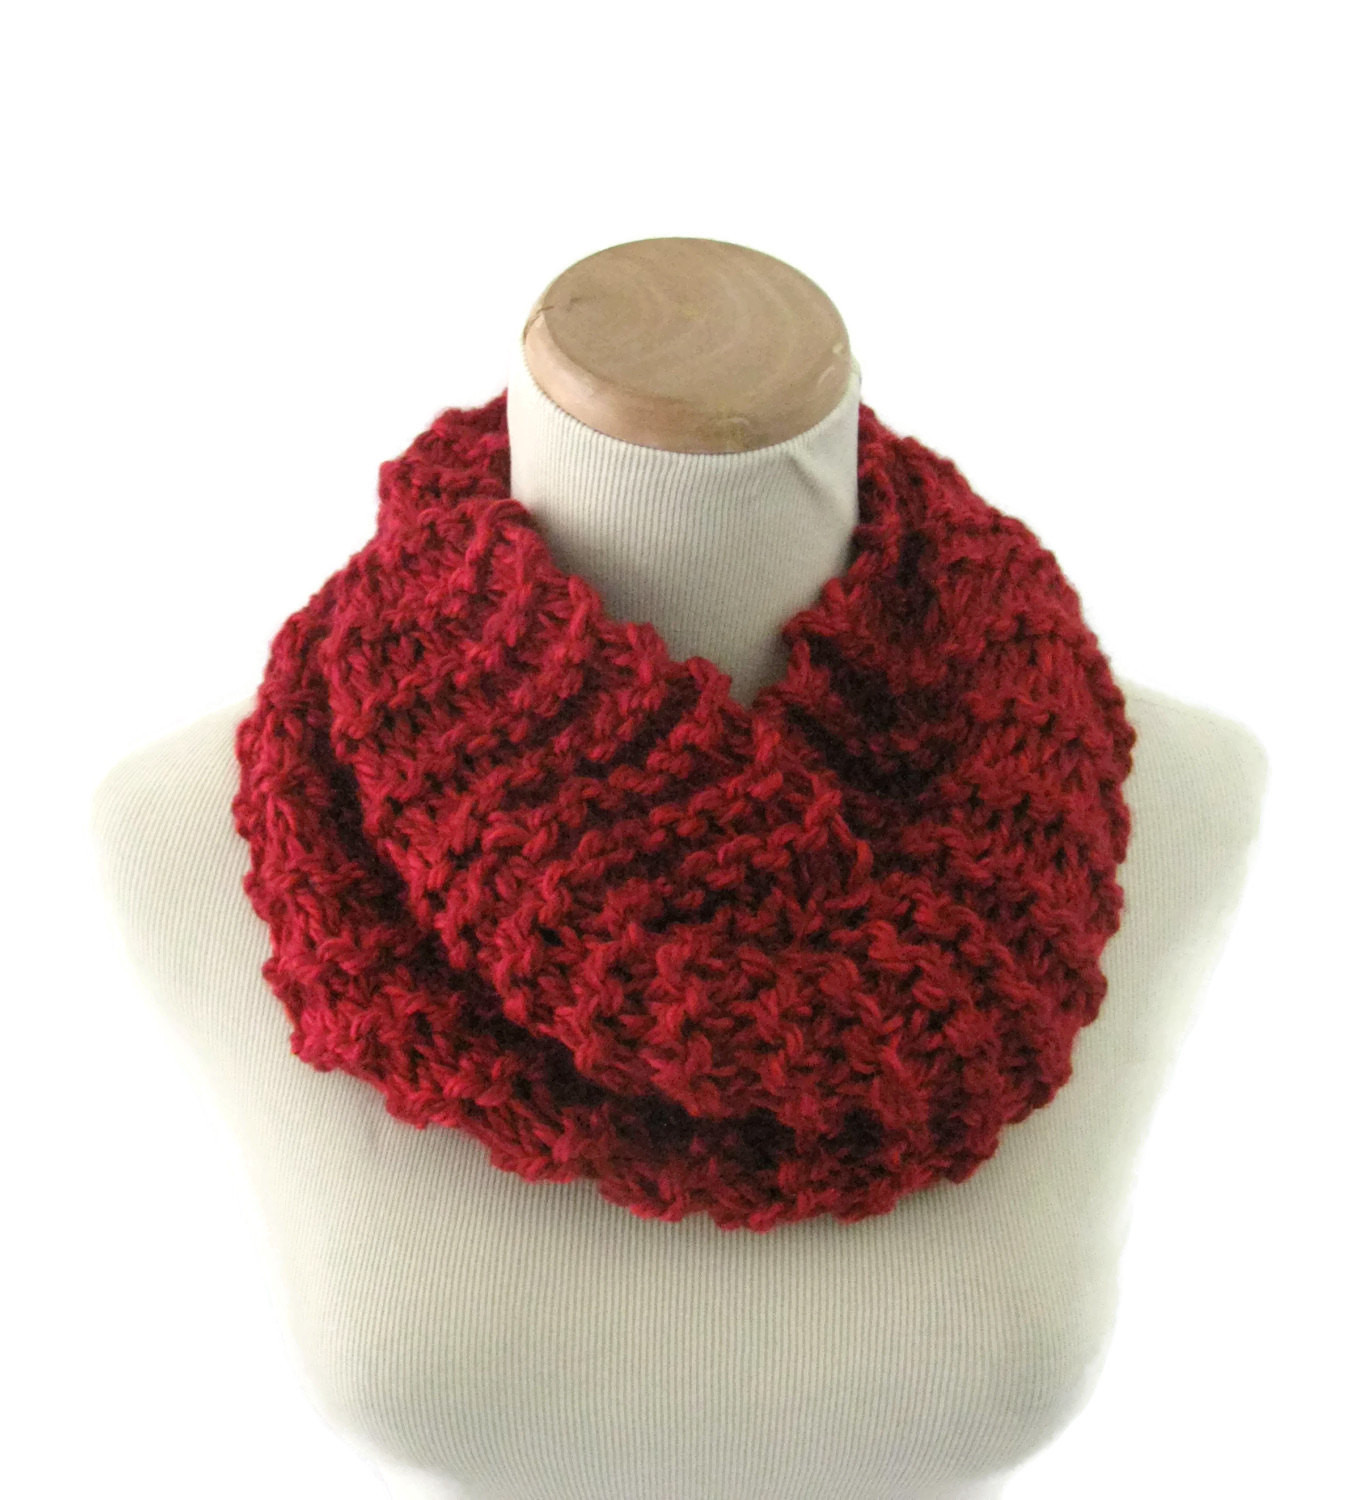 Knit Cowl Bulky Cowl Hand Knit Cowl Winter Scarf Red Cowl